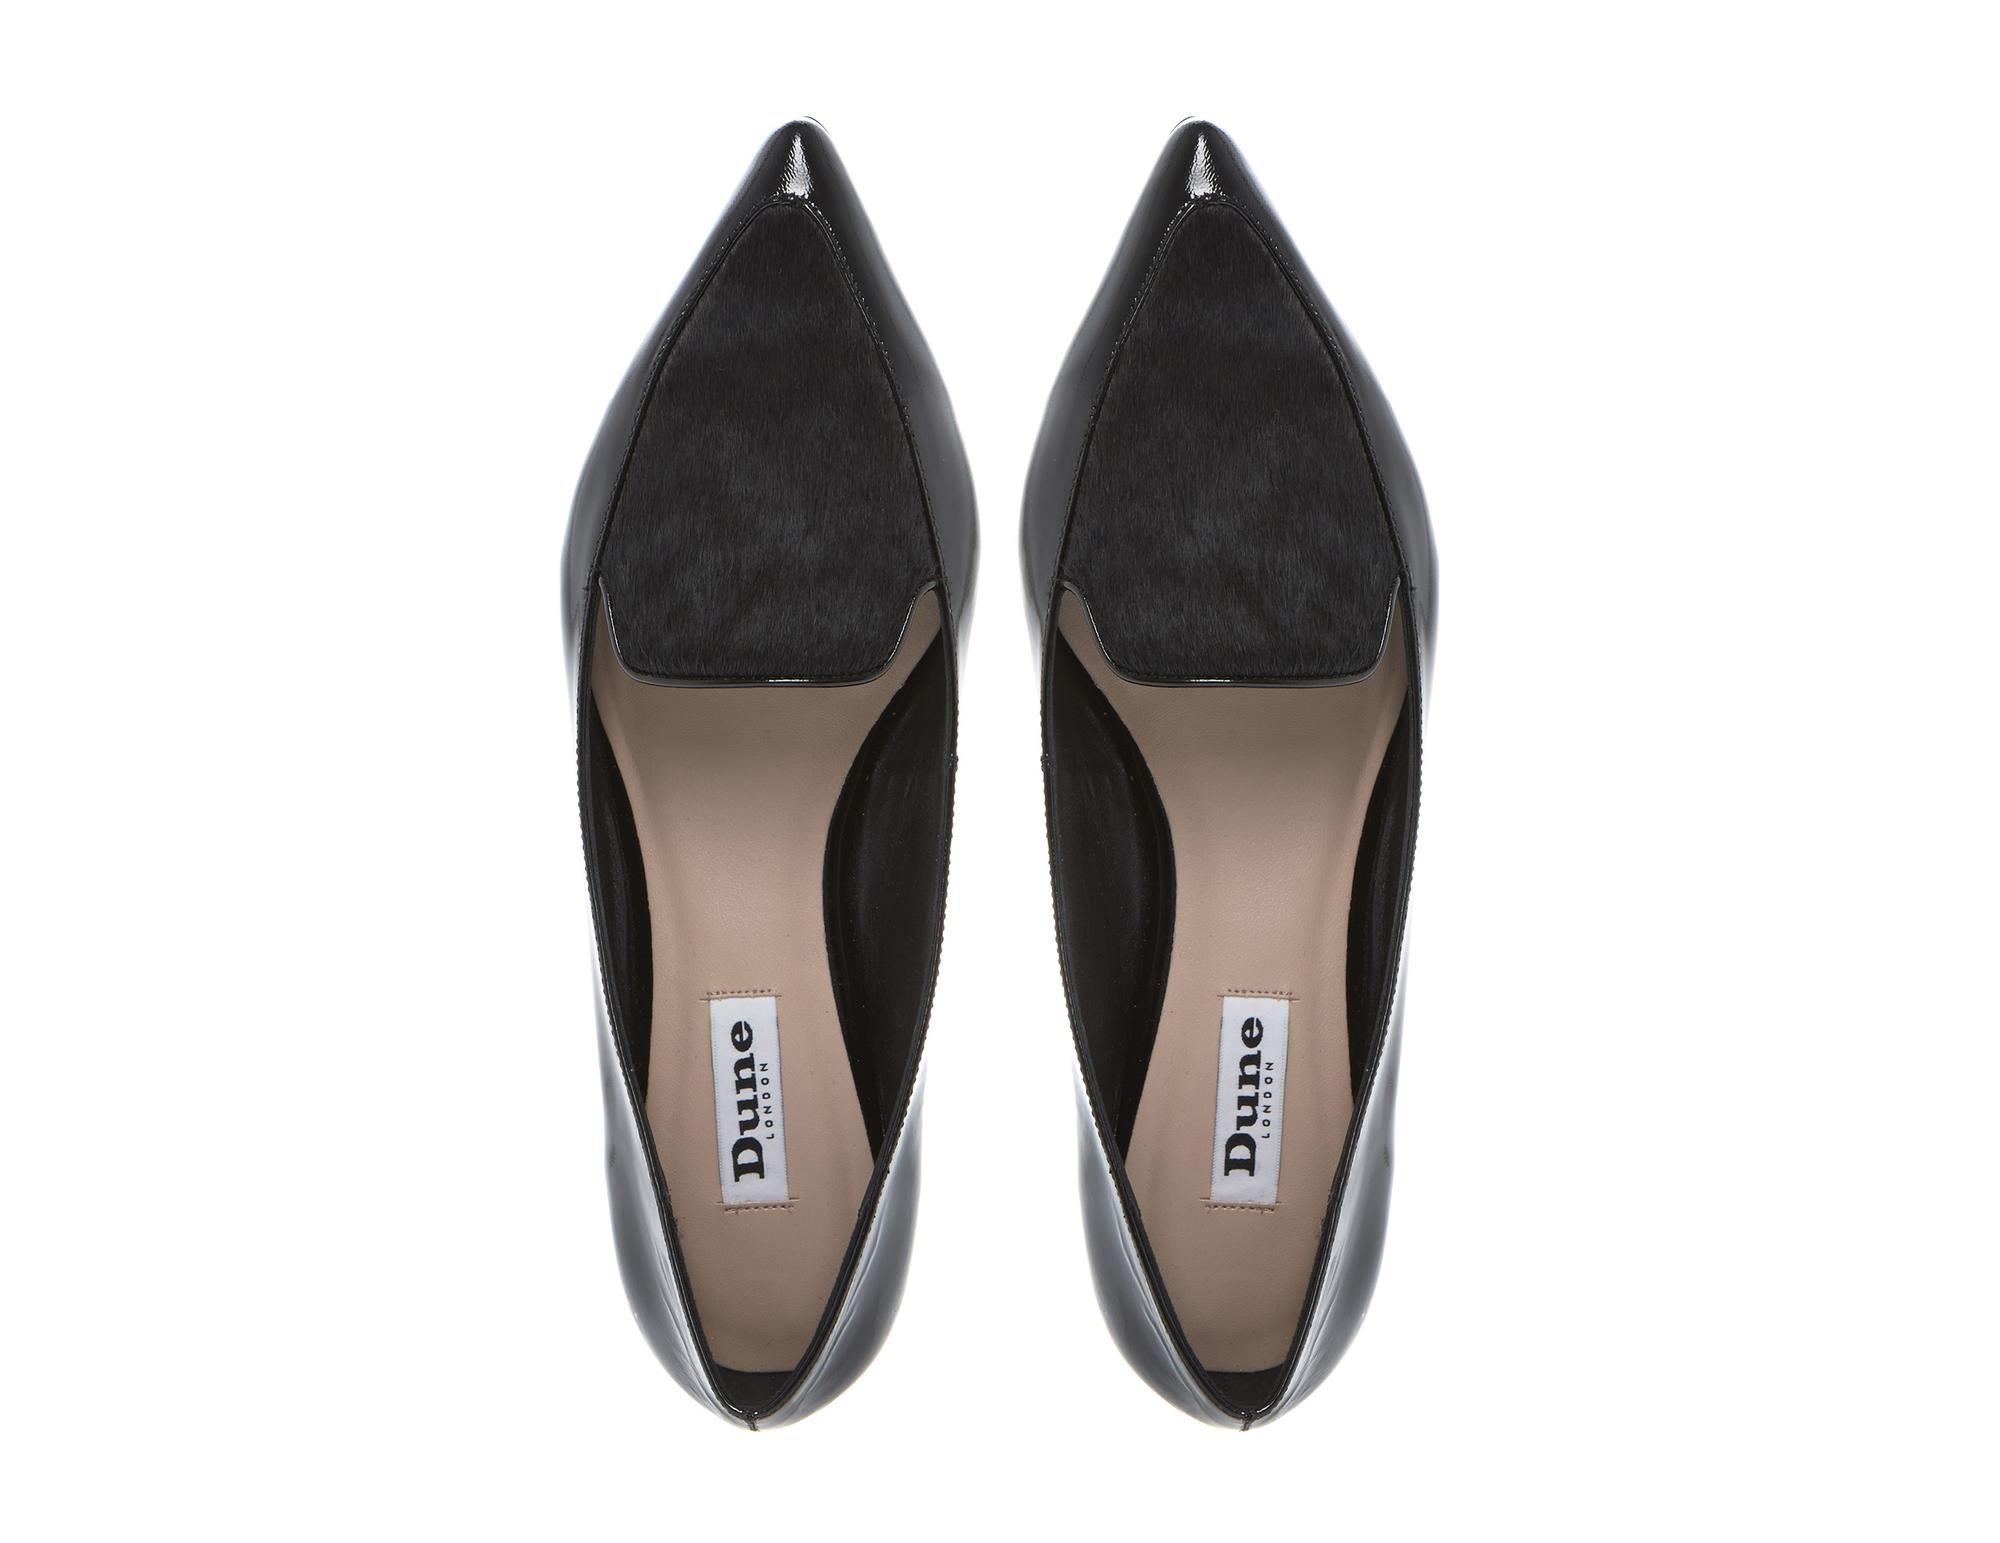 loafers, Flat shoes women, Dune shoes